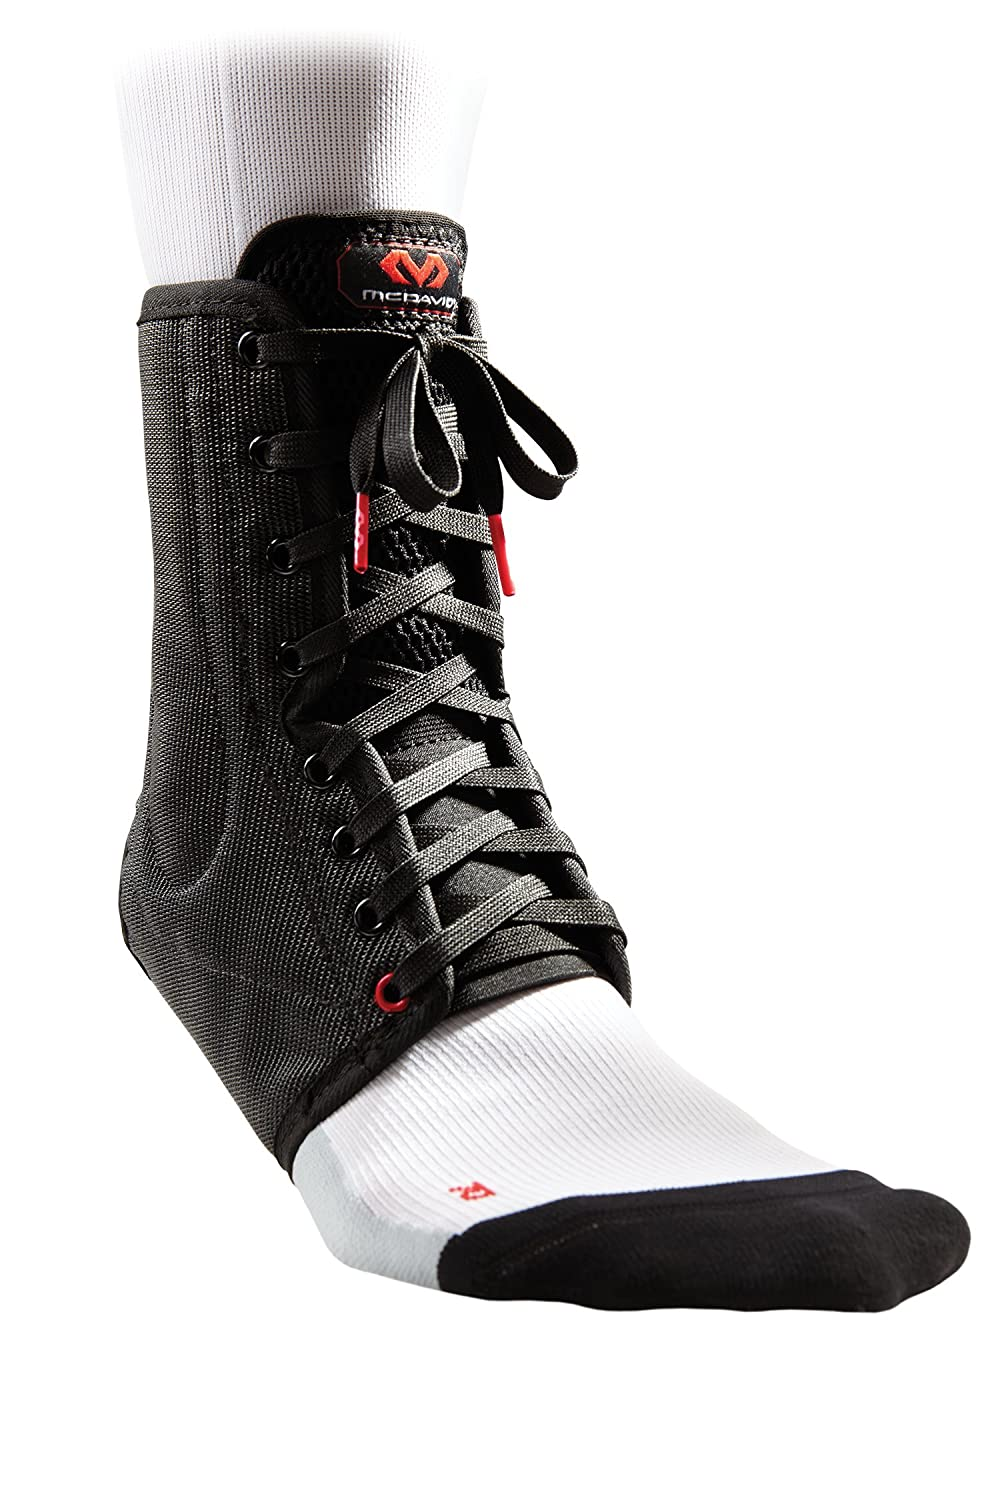 McDavid 199 Lace-up Ankle Brace with Support Stays